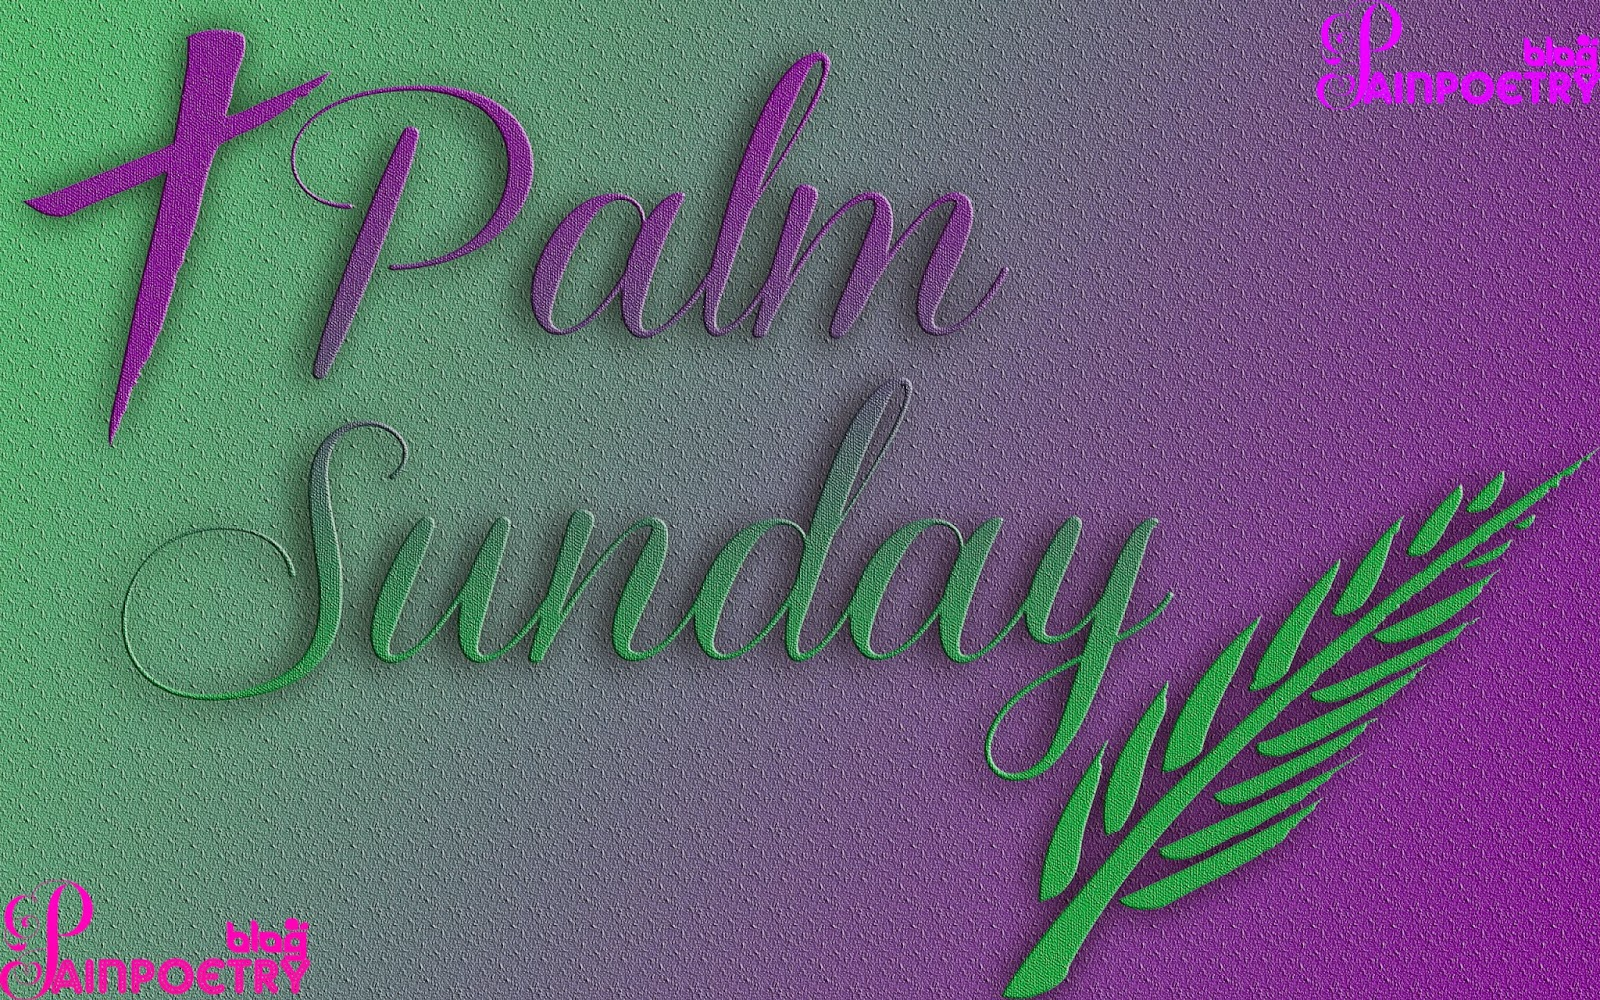 Palm-Sunday-Wishes-Image-HD